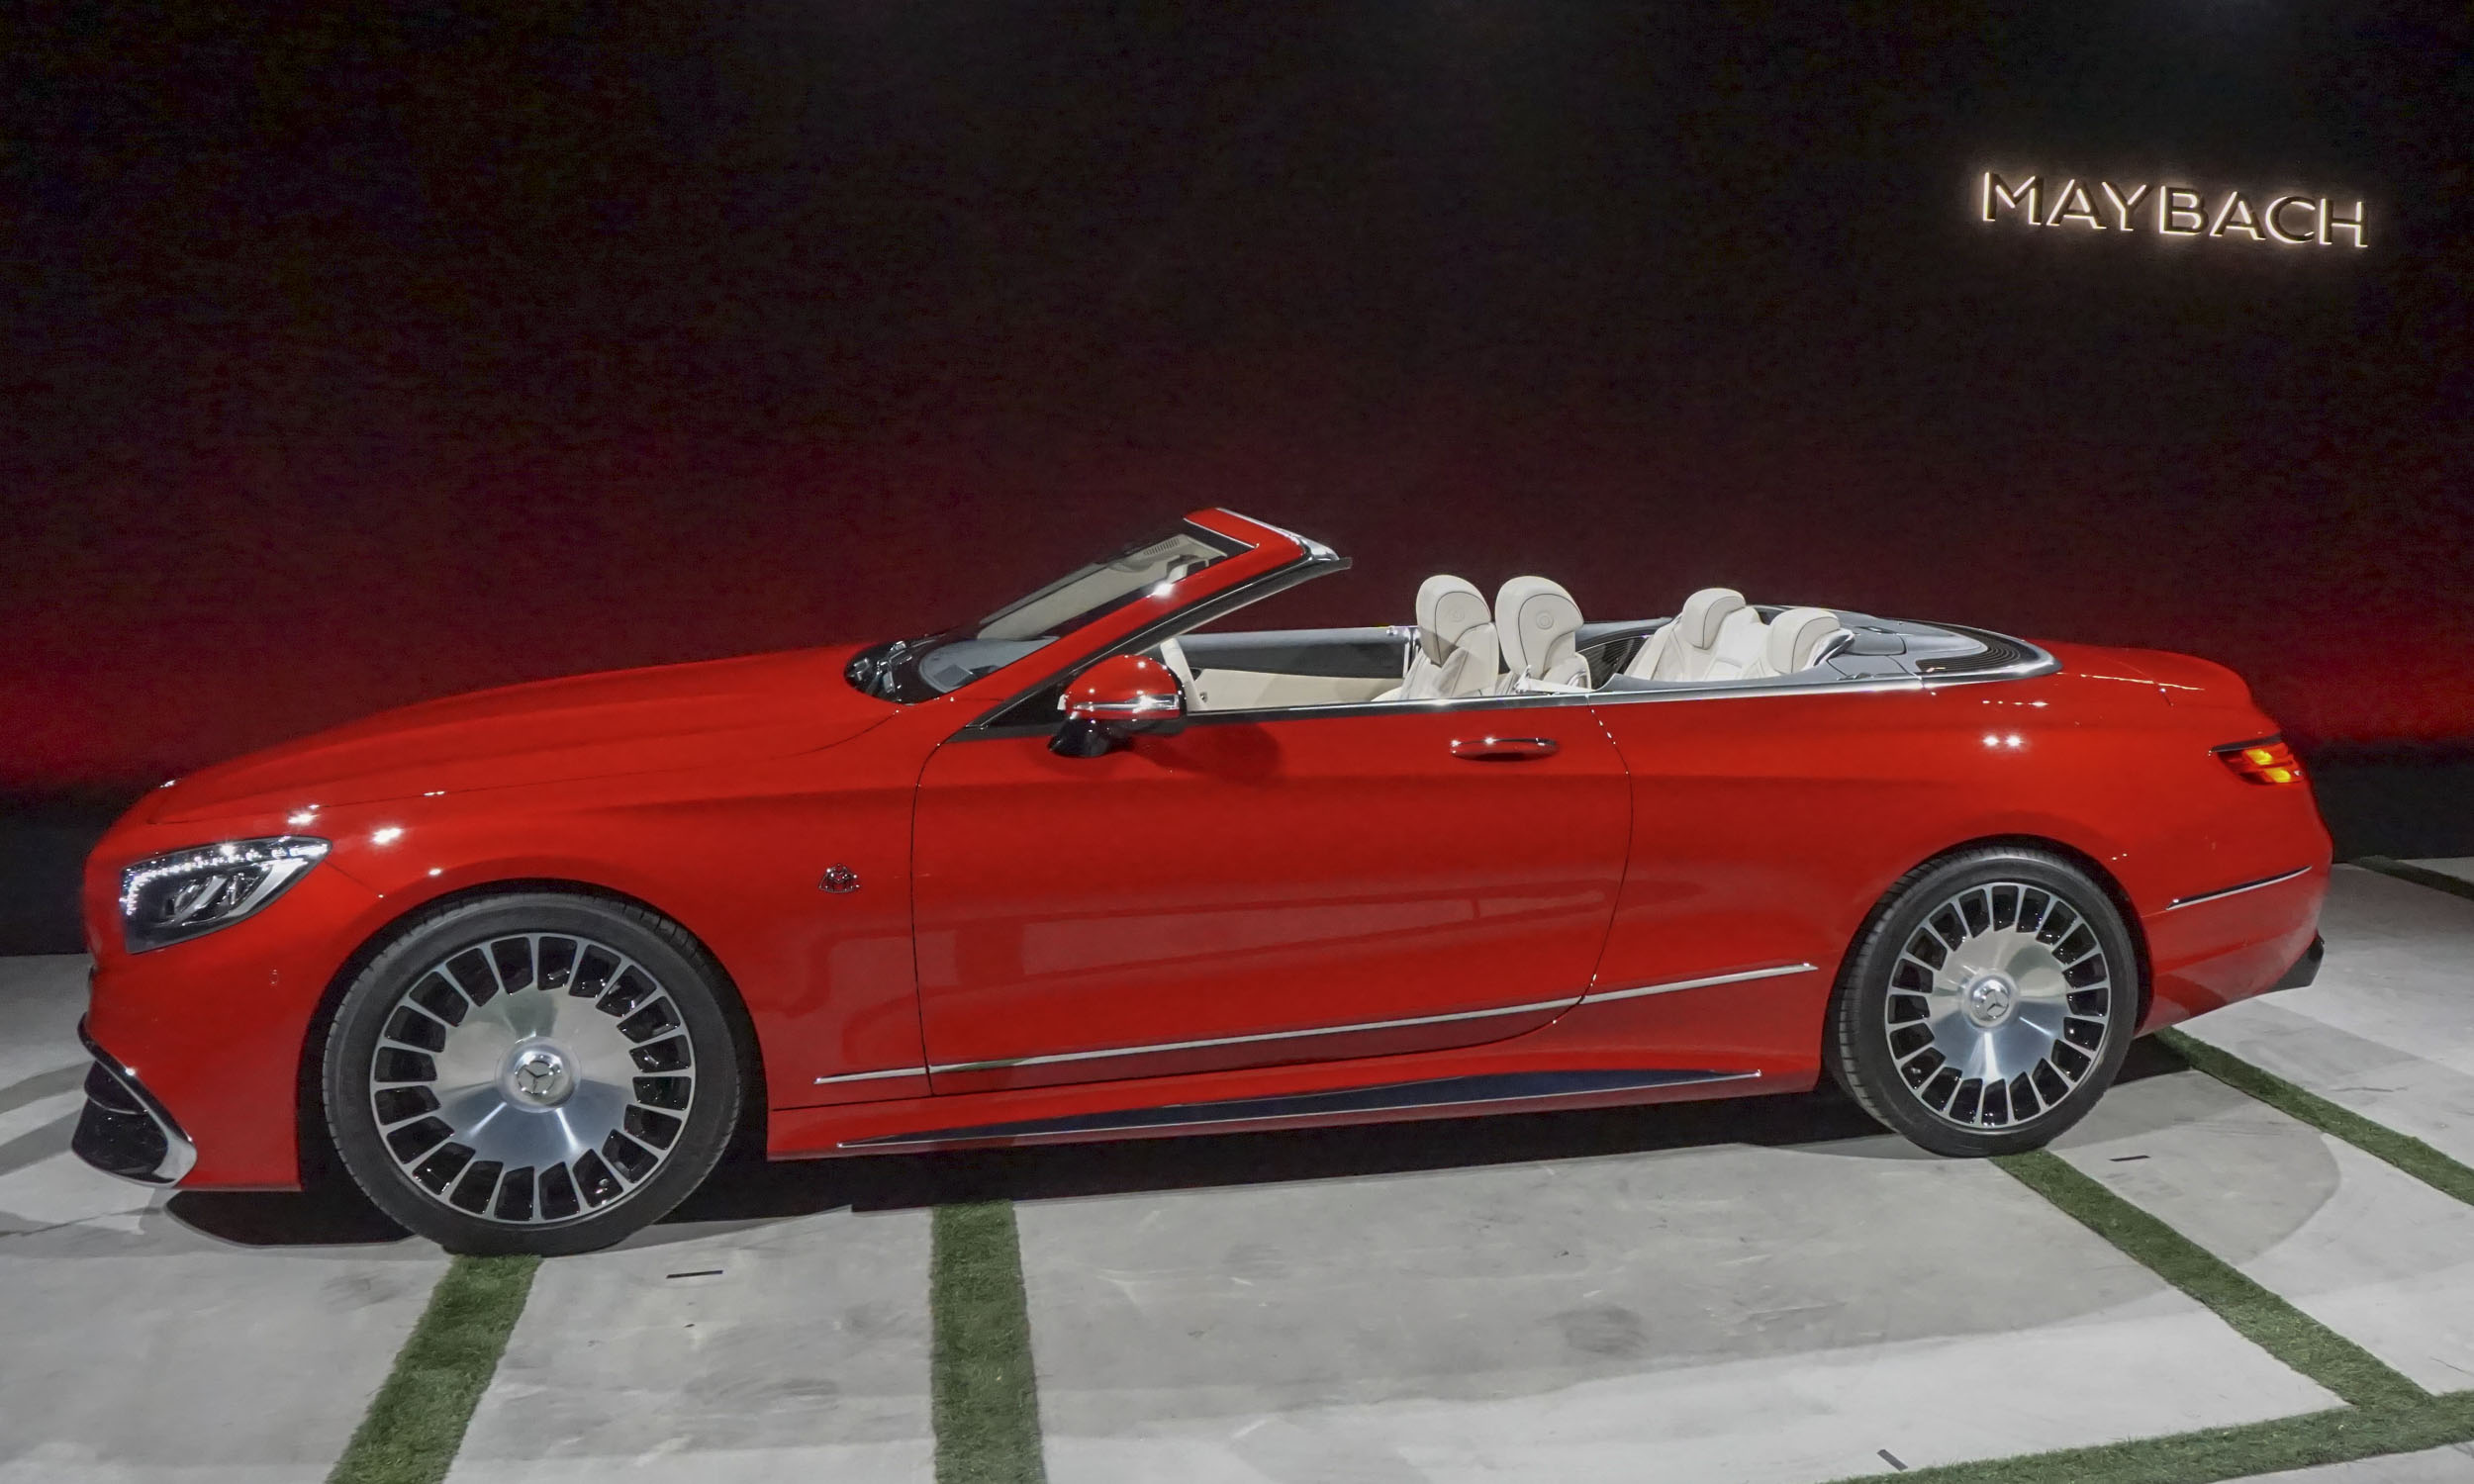 2018 mercedes maybach s650 cabriolet first look autonxt for Mercedes benz maybach cabriolet